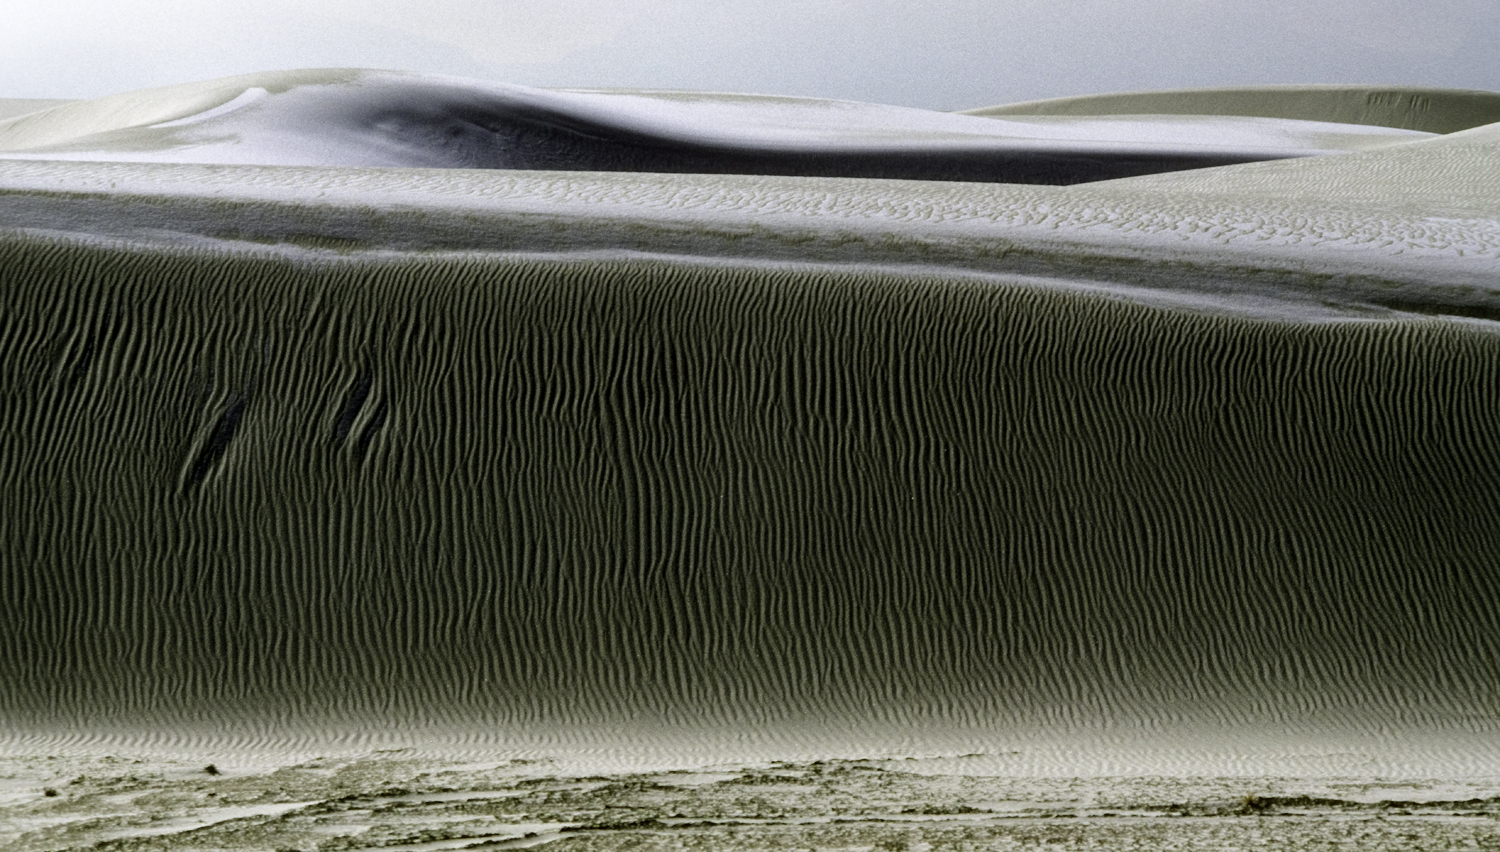 Snow on Sand Dunes by Dave Currey